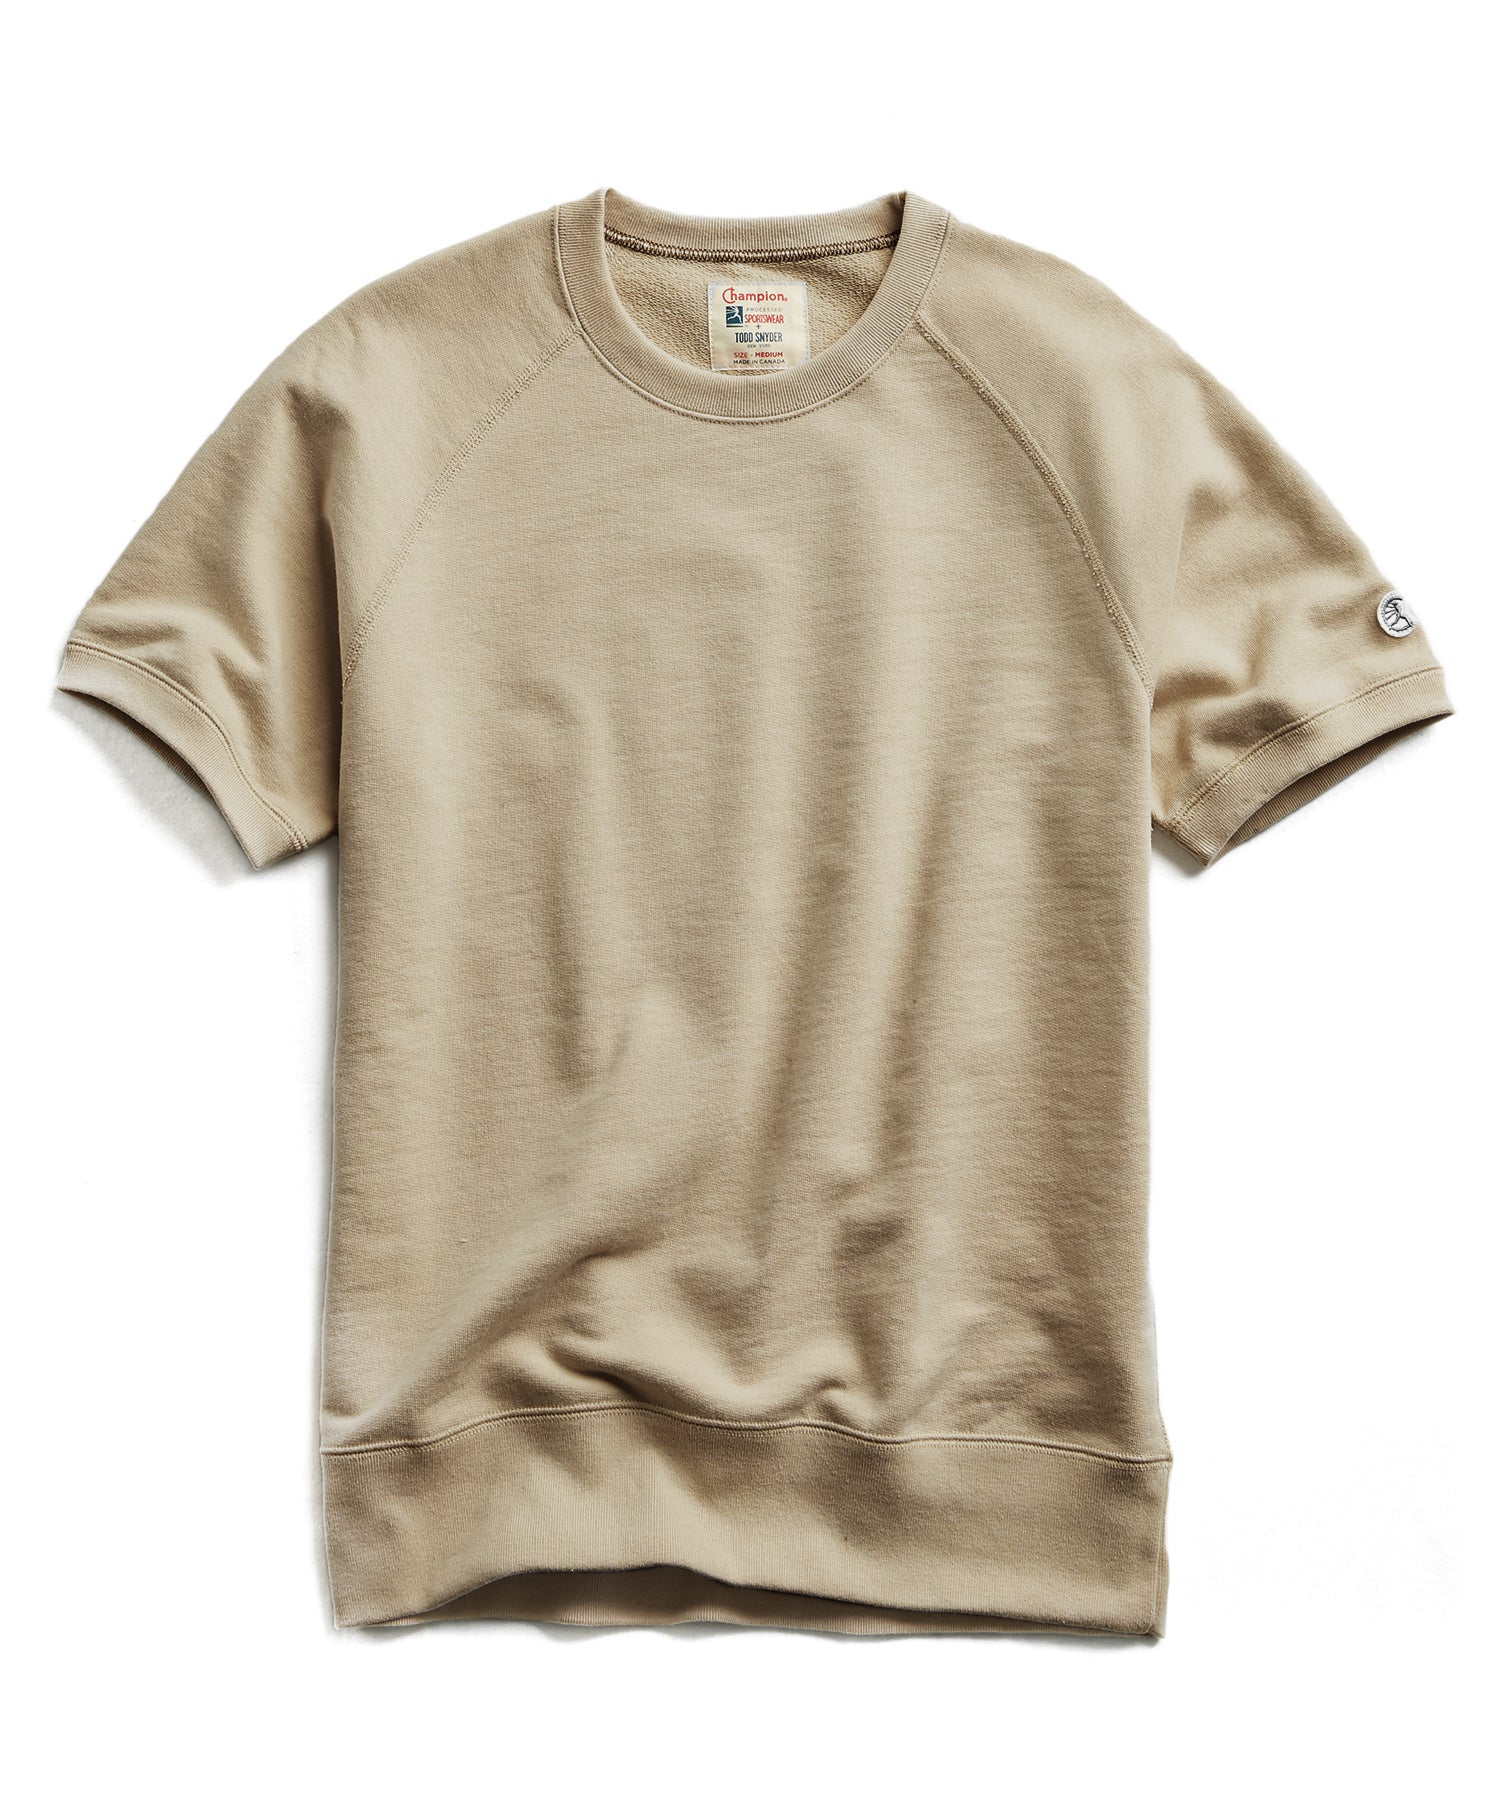 Terry Short Sleeve Sweatshirt in Dark Driftwood